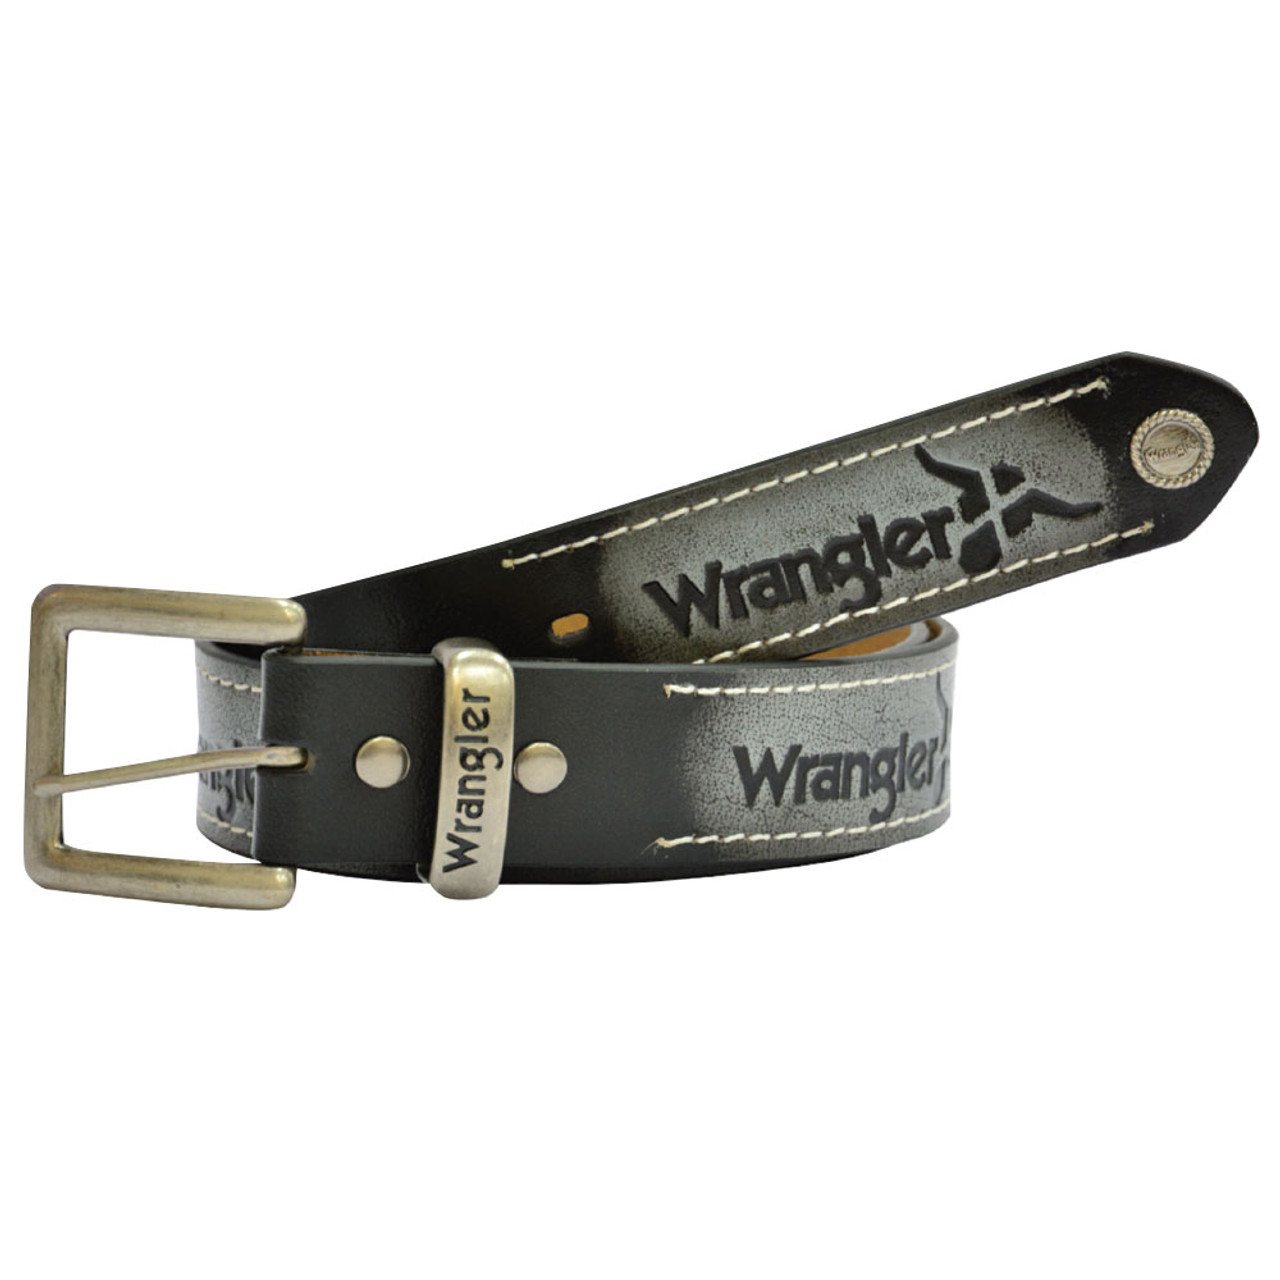 b1422342ea2 Wrangler Western Abrasion Logo Leather Belt Black - Koolstuff Australia